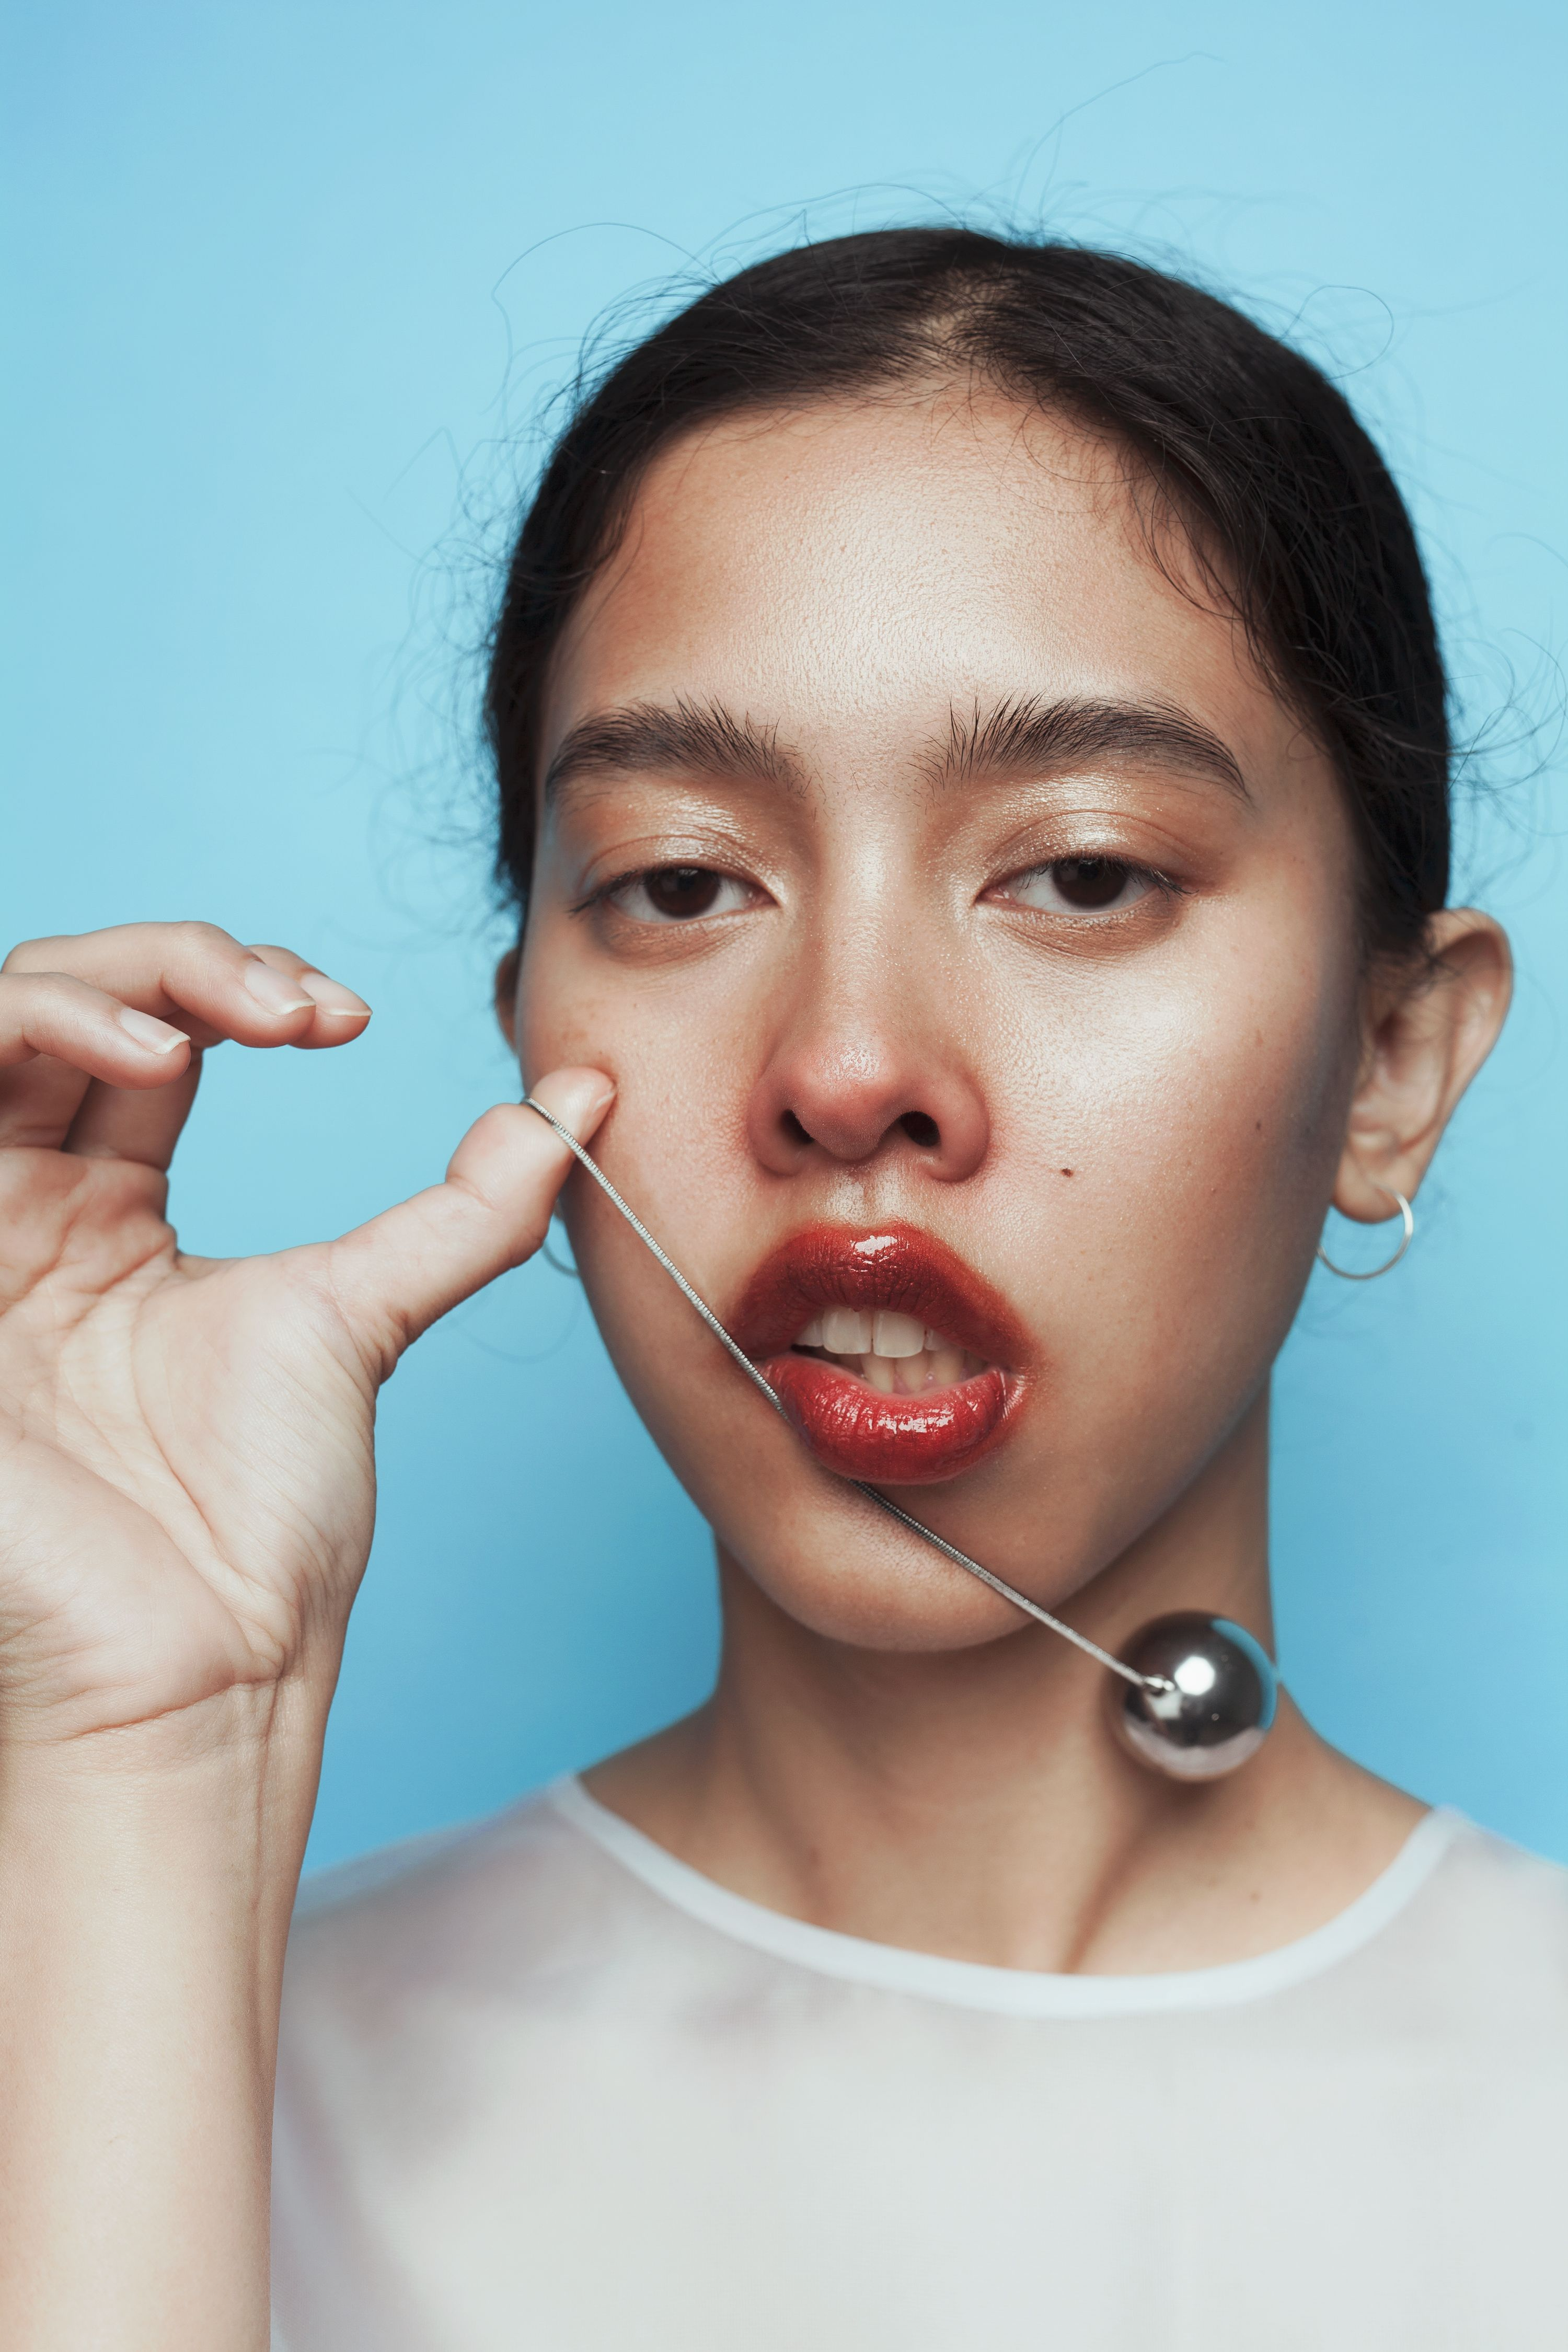 Ashanti photographed by Gia Weaver, makeup and hairstyling by Josie Hanuska #fluffyhair #lollipoplips #sheershirts #redlips #copper #glowingskin #glossylips #smudgylips #fashion #portrait #melbournemodel #rednose #soft #editorialmakeup #editorial #glossymakeup #blue #fluffybrows